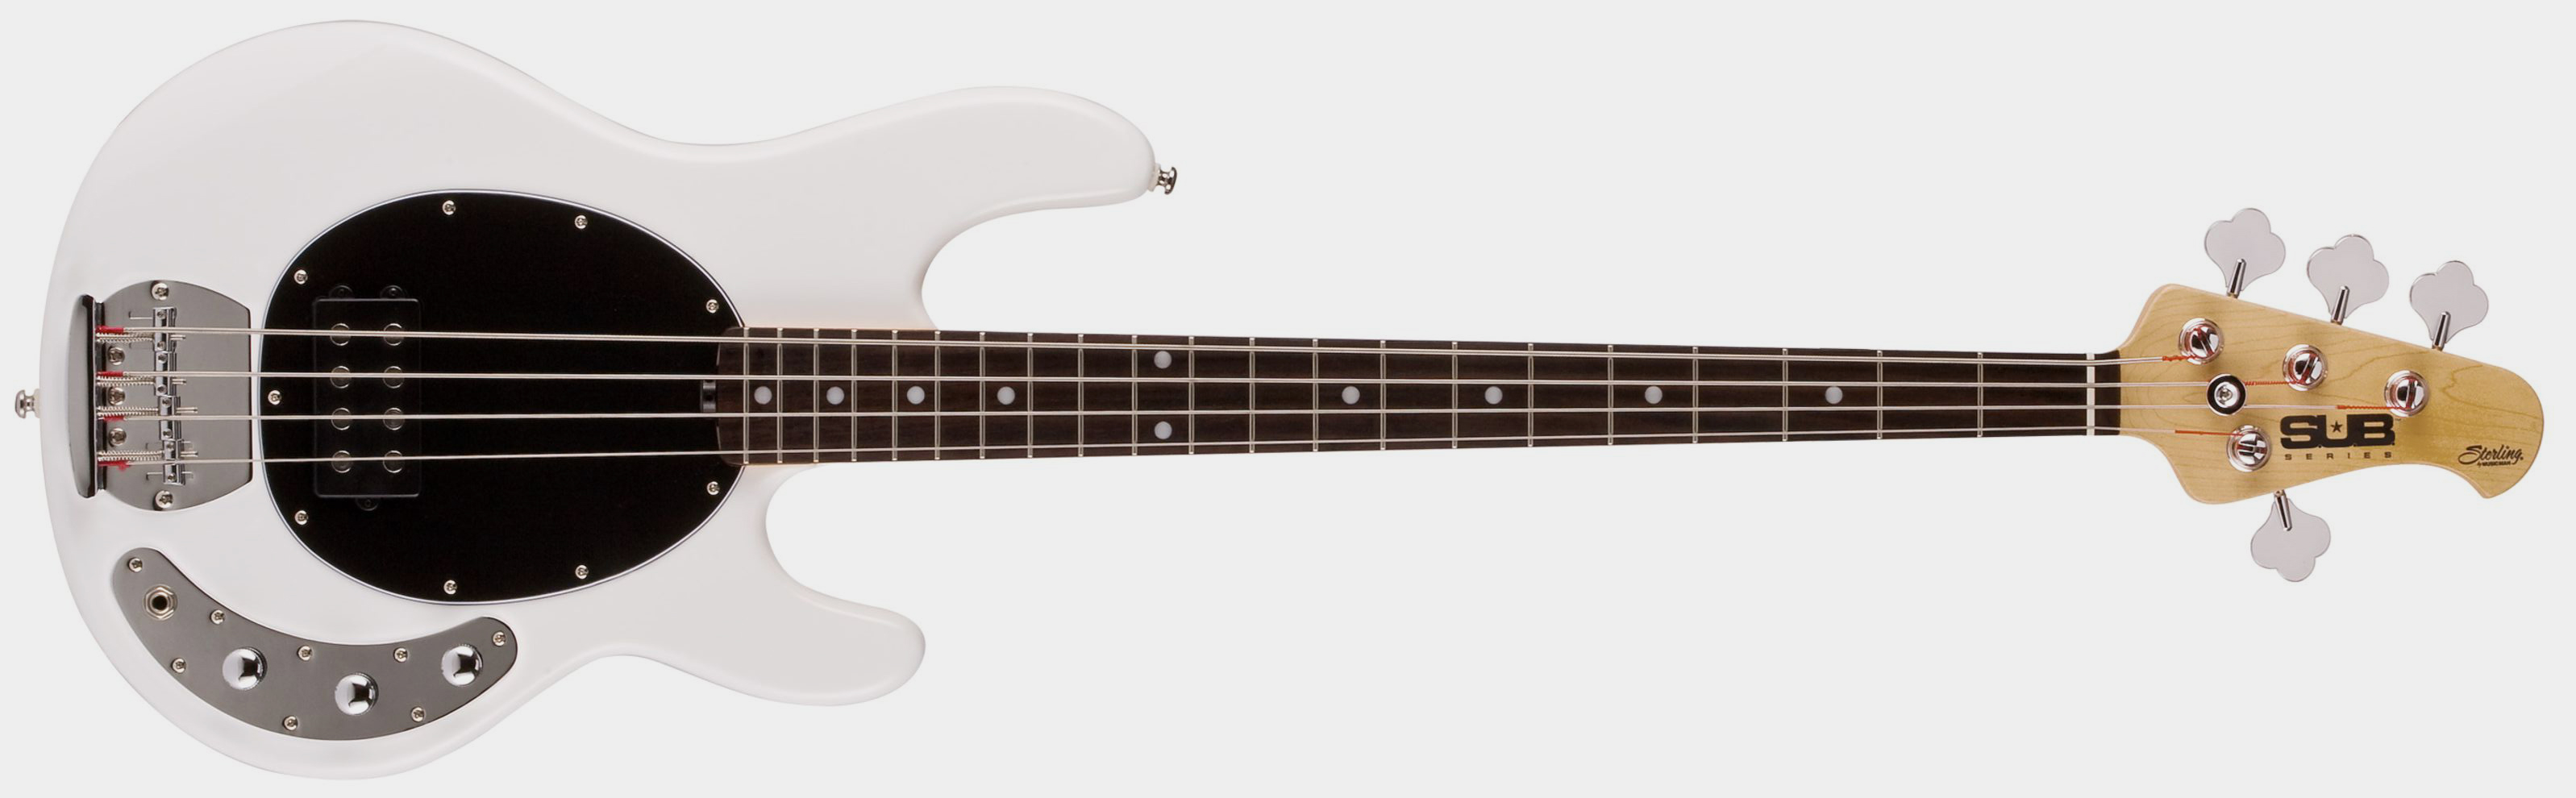 STERLING BY MUSIC MAN S.U.B. Ray4 RW White